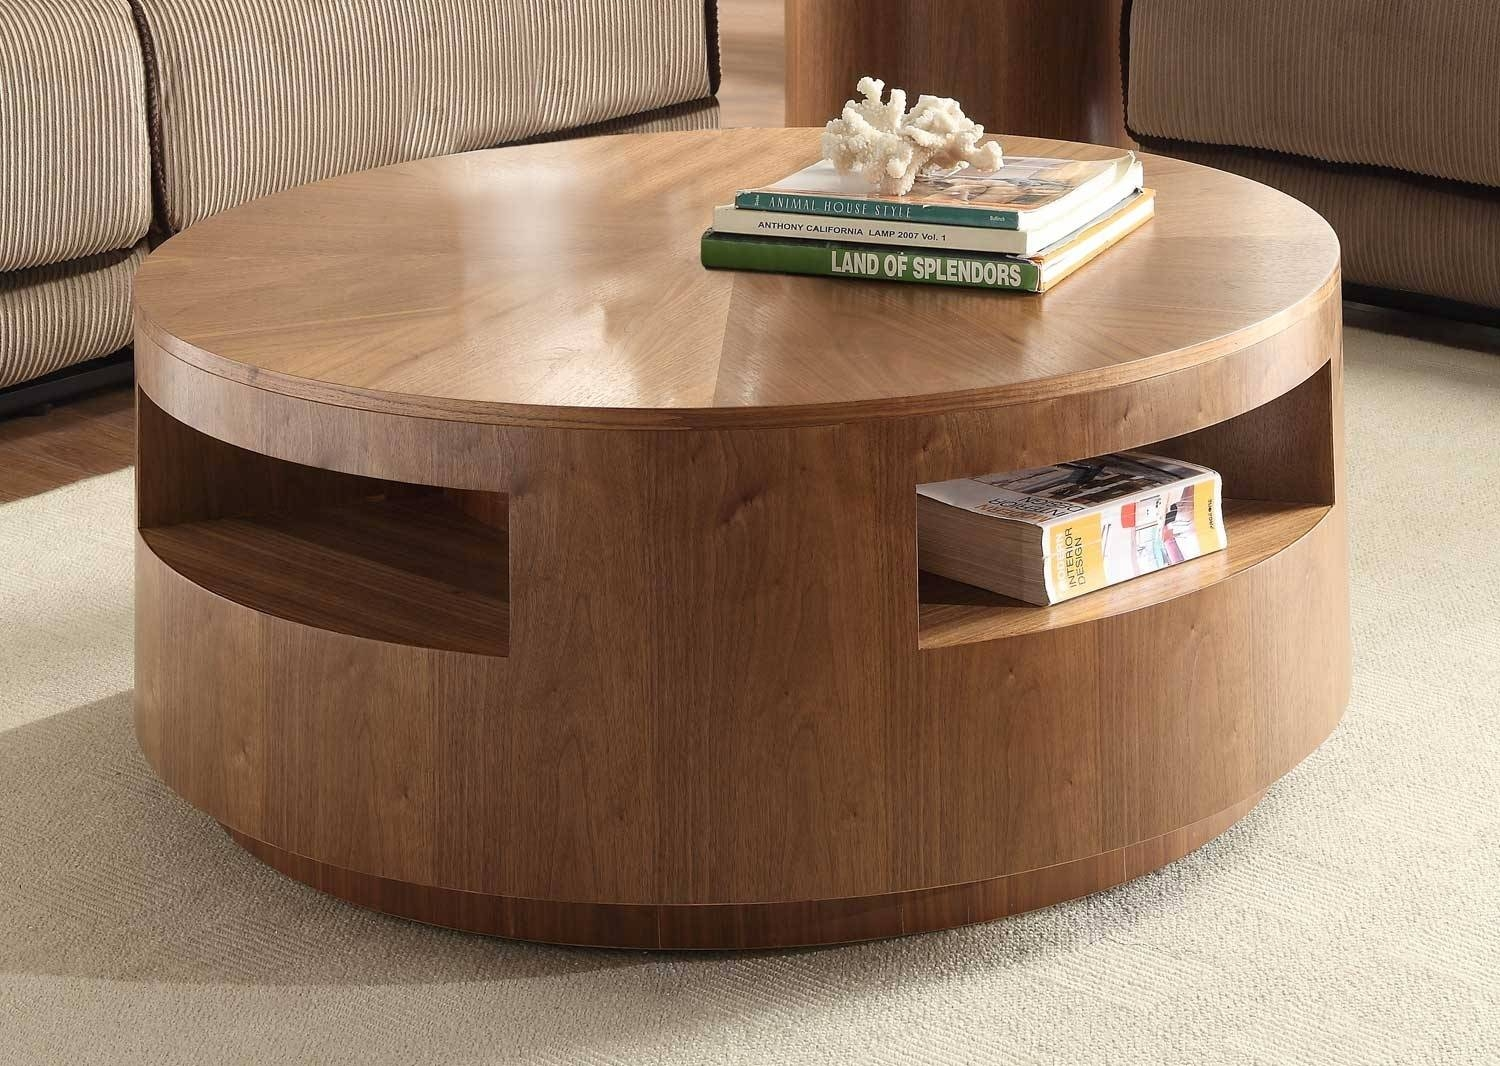 Round Coffee Table With Drawers And Open Shelves Tables Wooden inside Round Storage Coffee Tables (Image 23 of 30)